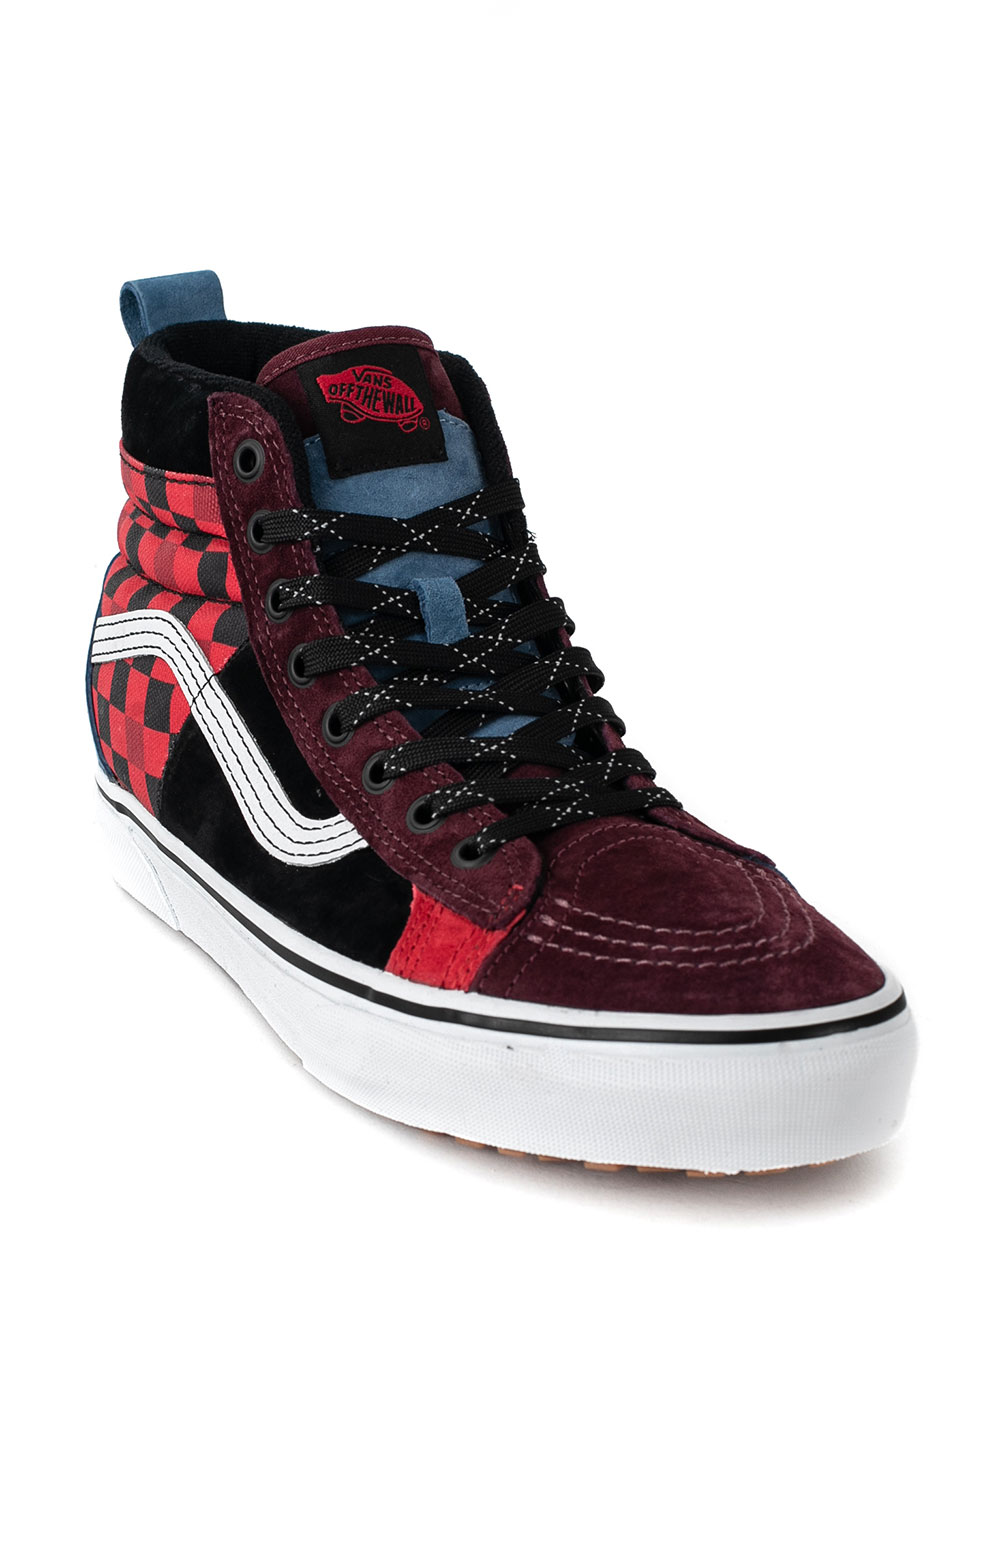 (DQ523A) Sk8-Hi 48 MTE DX Shoes - Multi/Red 3